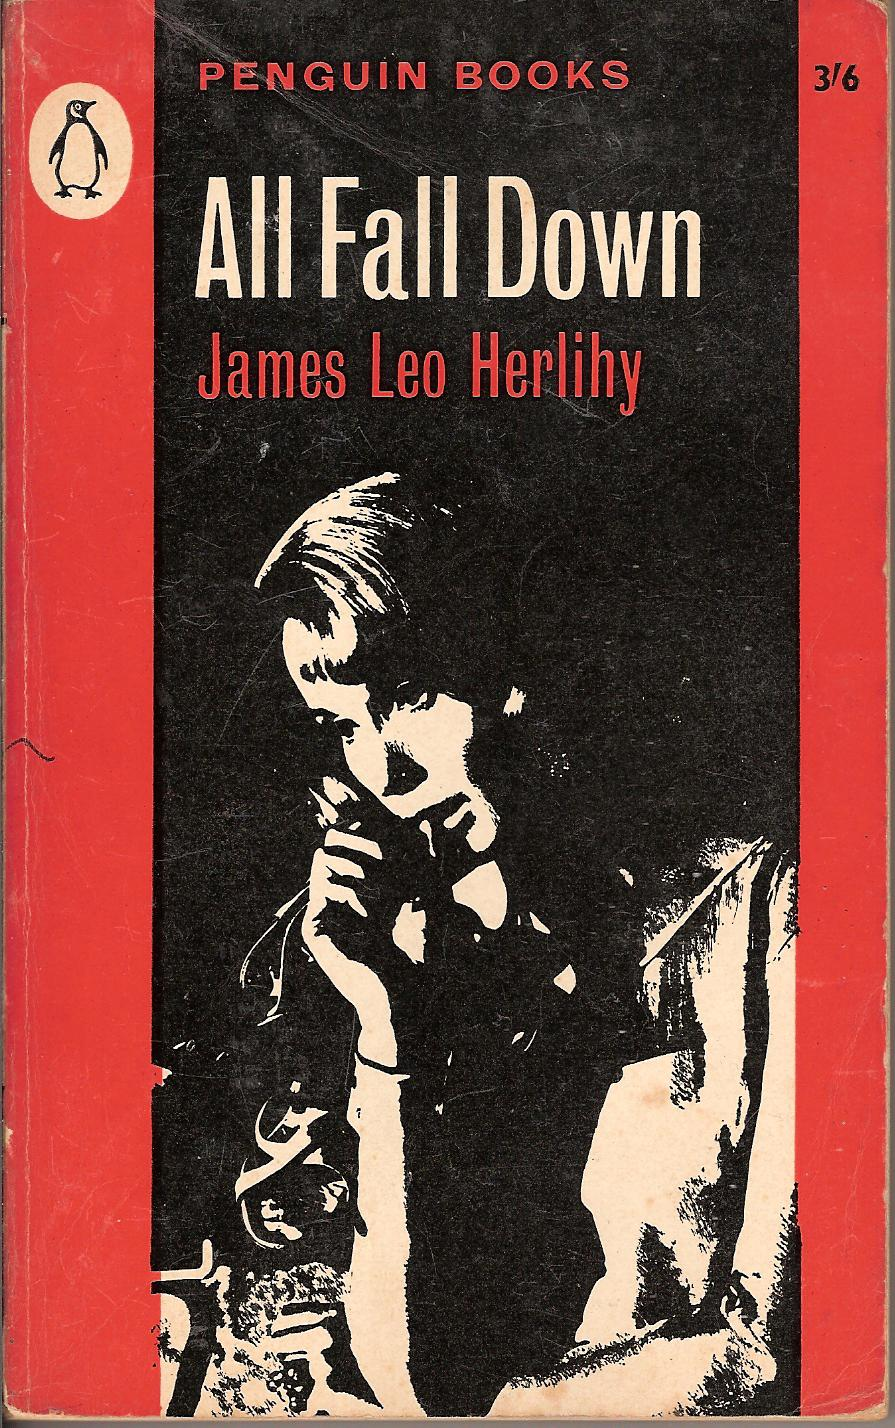 Penguin Book Cover Size ~ All fall down penguin book cover flickr photo sharing